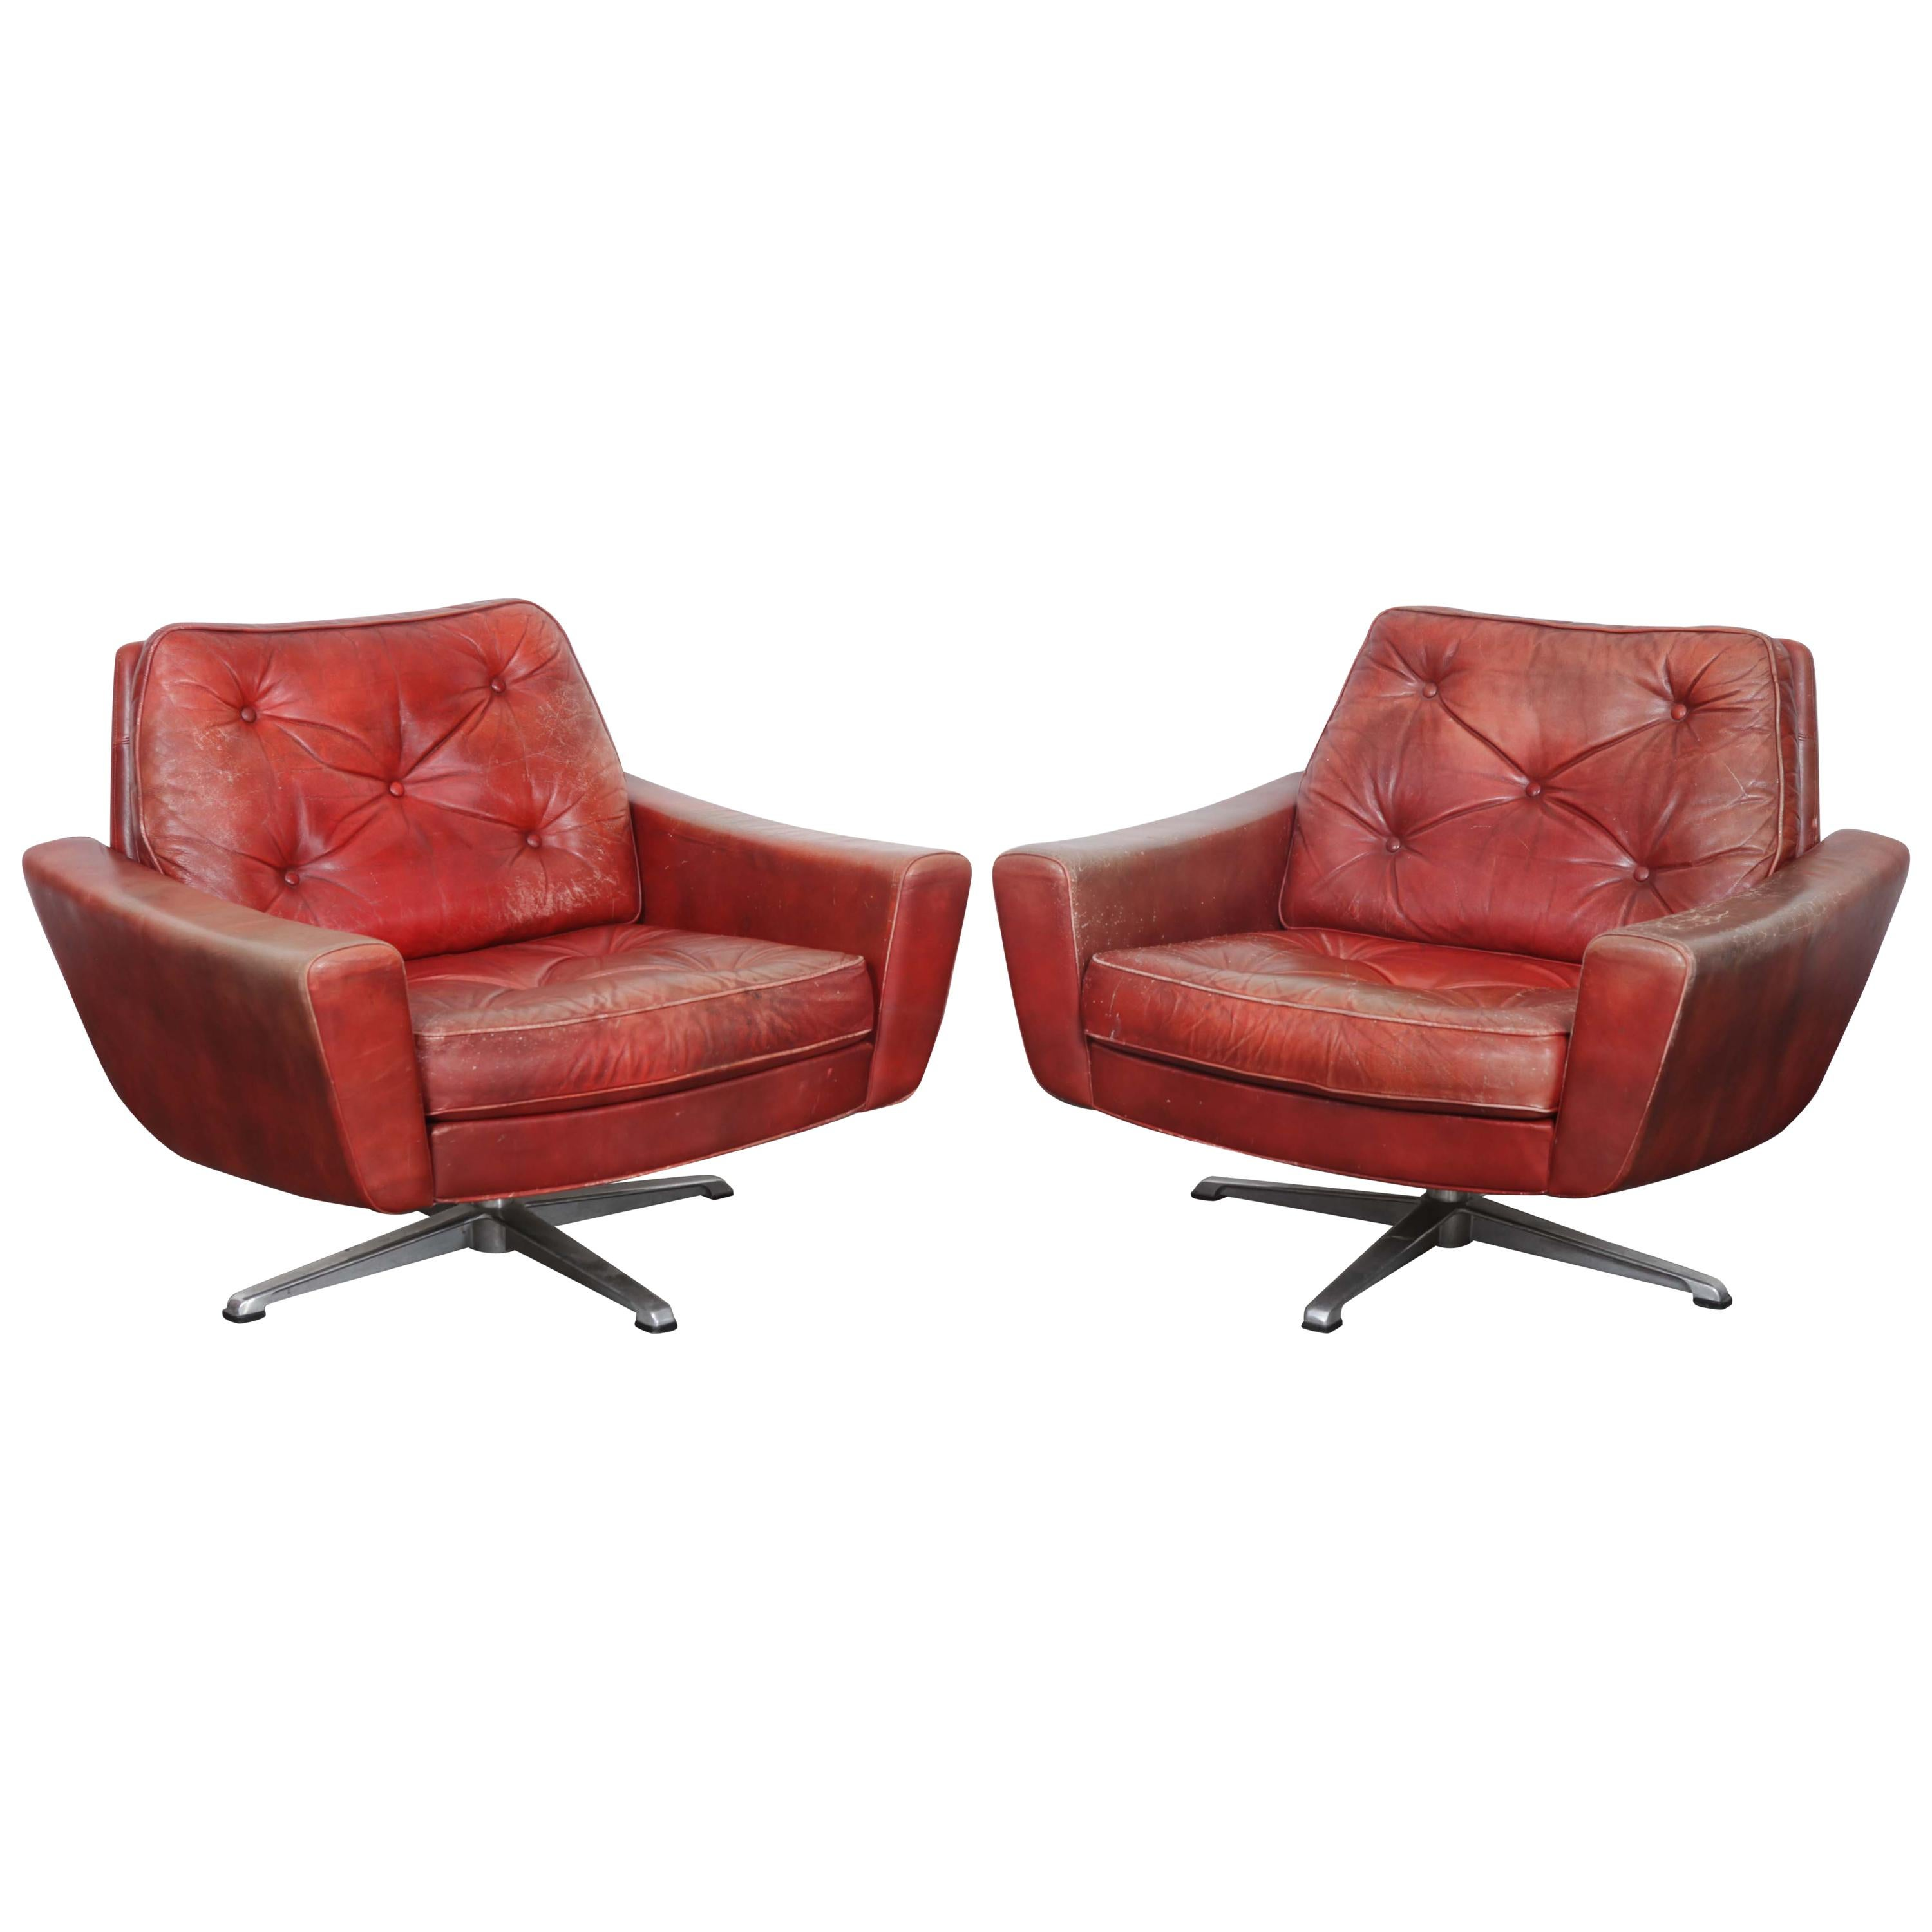 Pair Of Swedish Mid Century Modern Red Leather Swivel Lounge Chairs For Sale